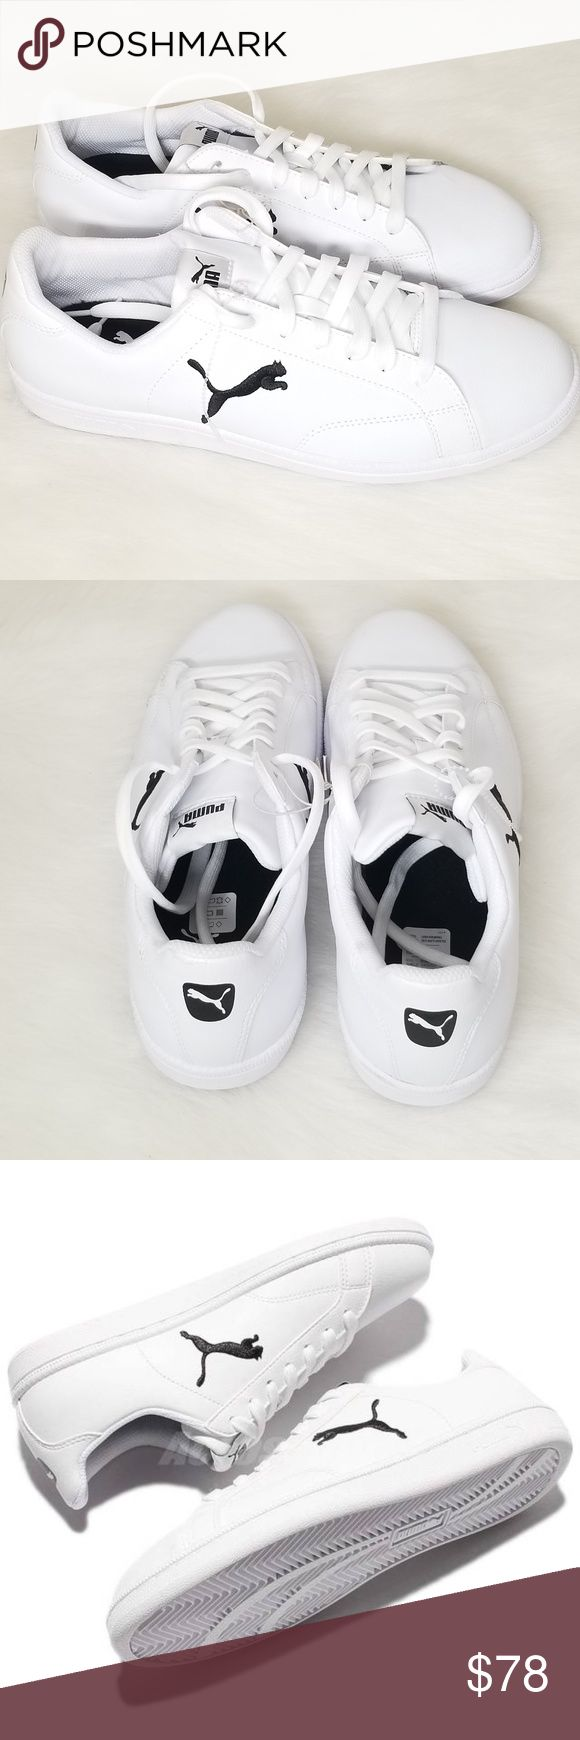 Men Puma White Black Leather Casual Sneakers Shoe Up for sale brand new ,no box Men's Puma White Black Leather Casual Sneakers Shoe .  Men Size 9.5  Color-WHite w/ Black Puma Shoes Sneakers